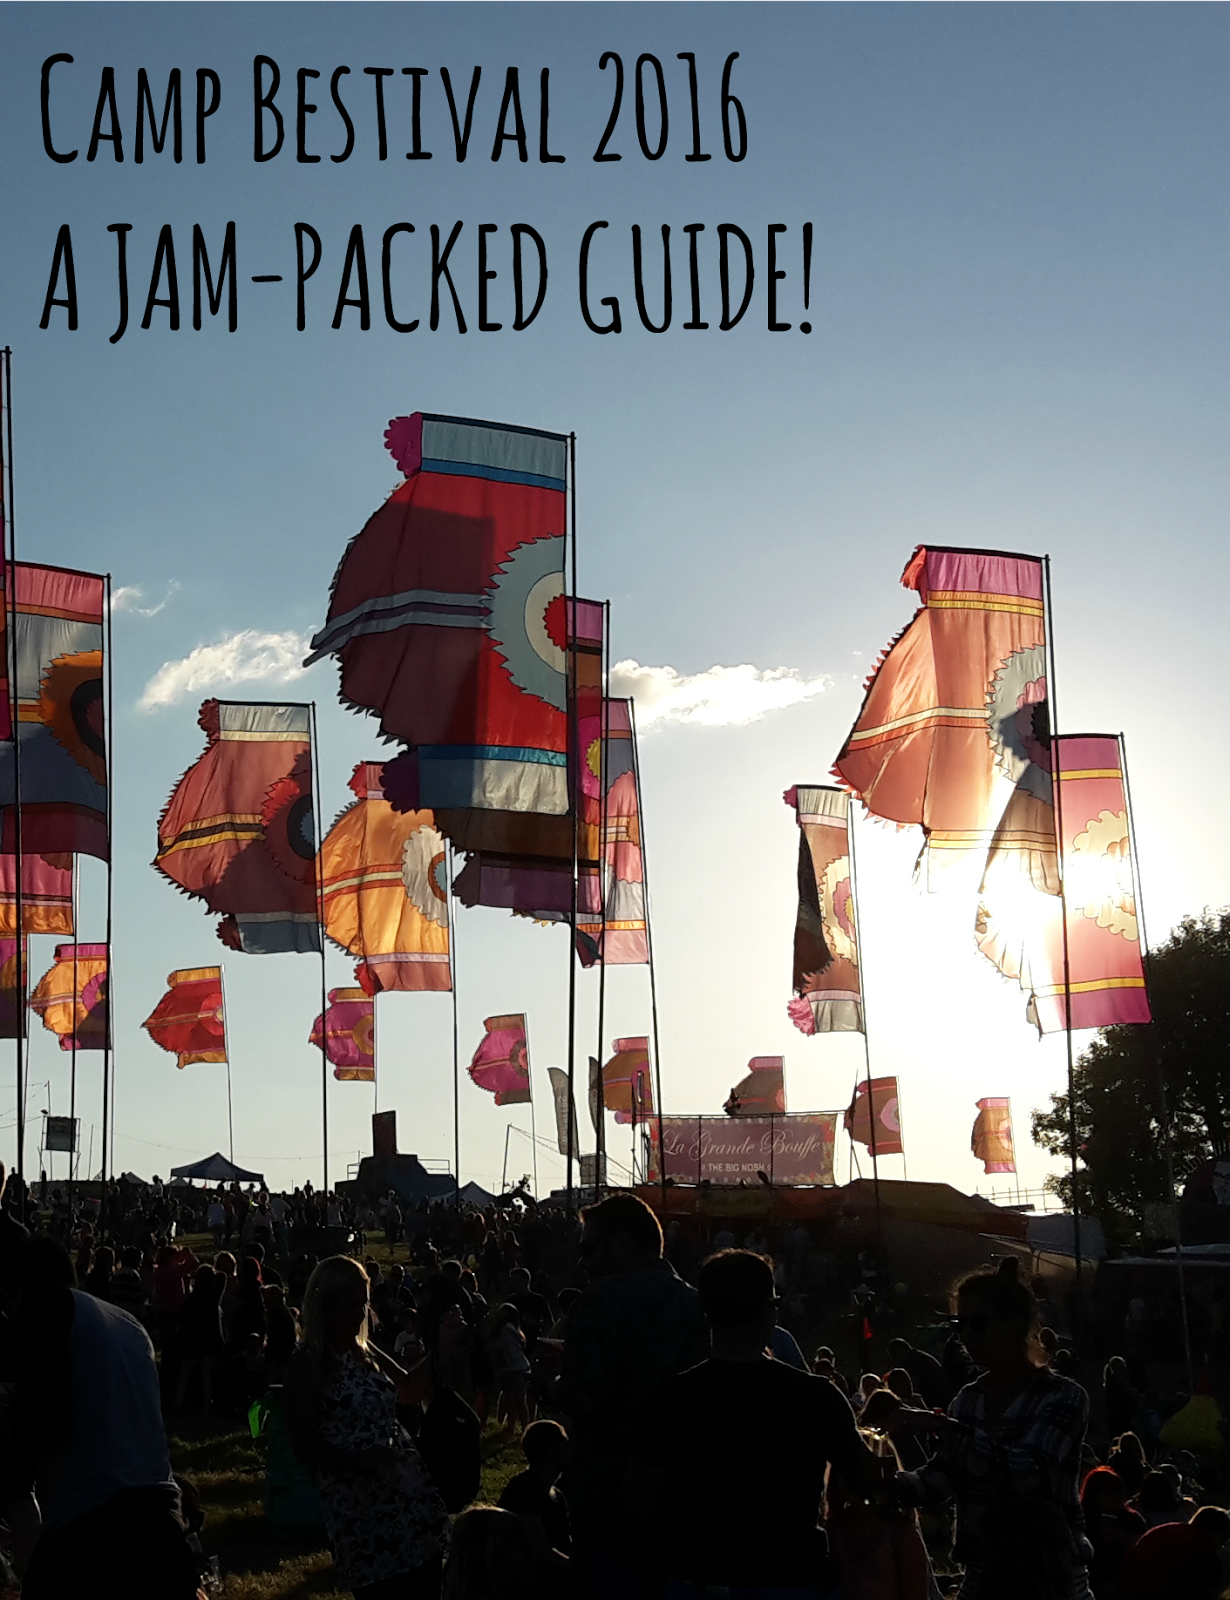 Camp Bestival 2016 ~ A jam-packed guide! // 76sunflowers